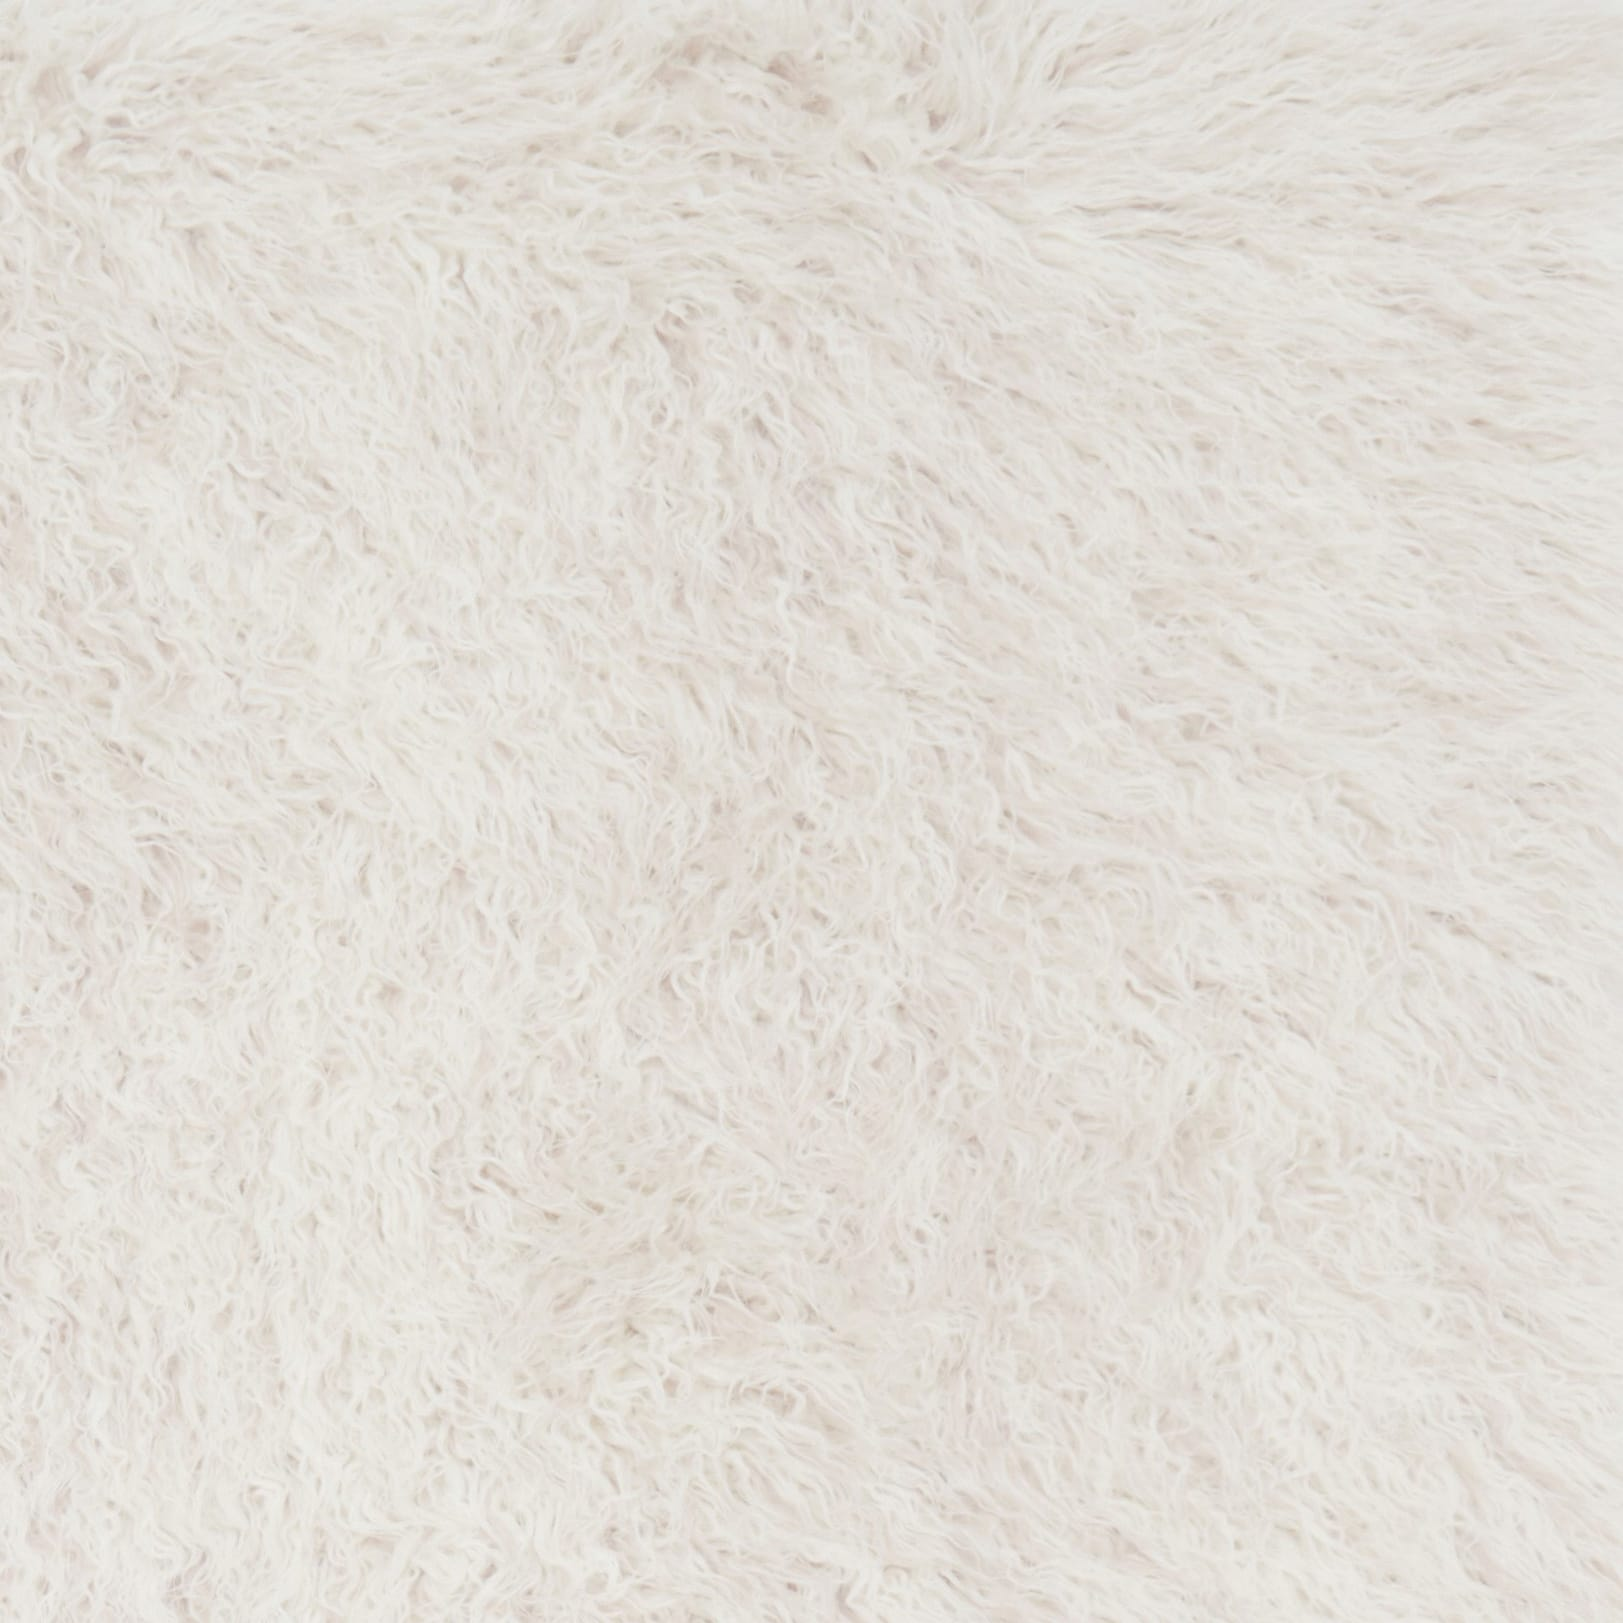 Faux Fur Sheepskin Textured Rug 2 X 3 On Free Shipping Today 17415479